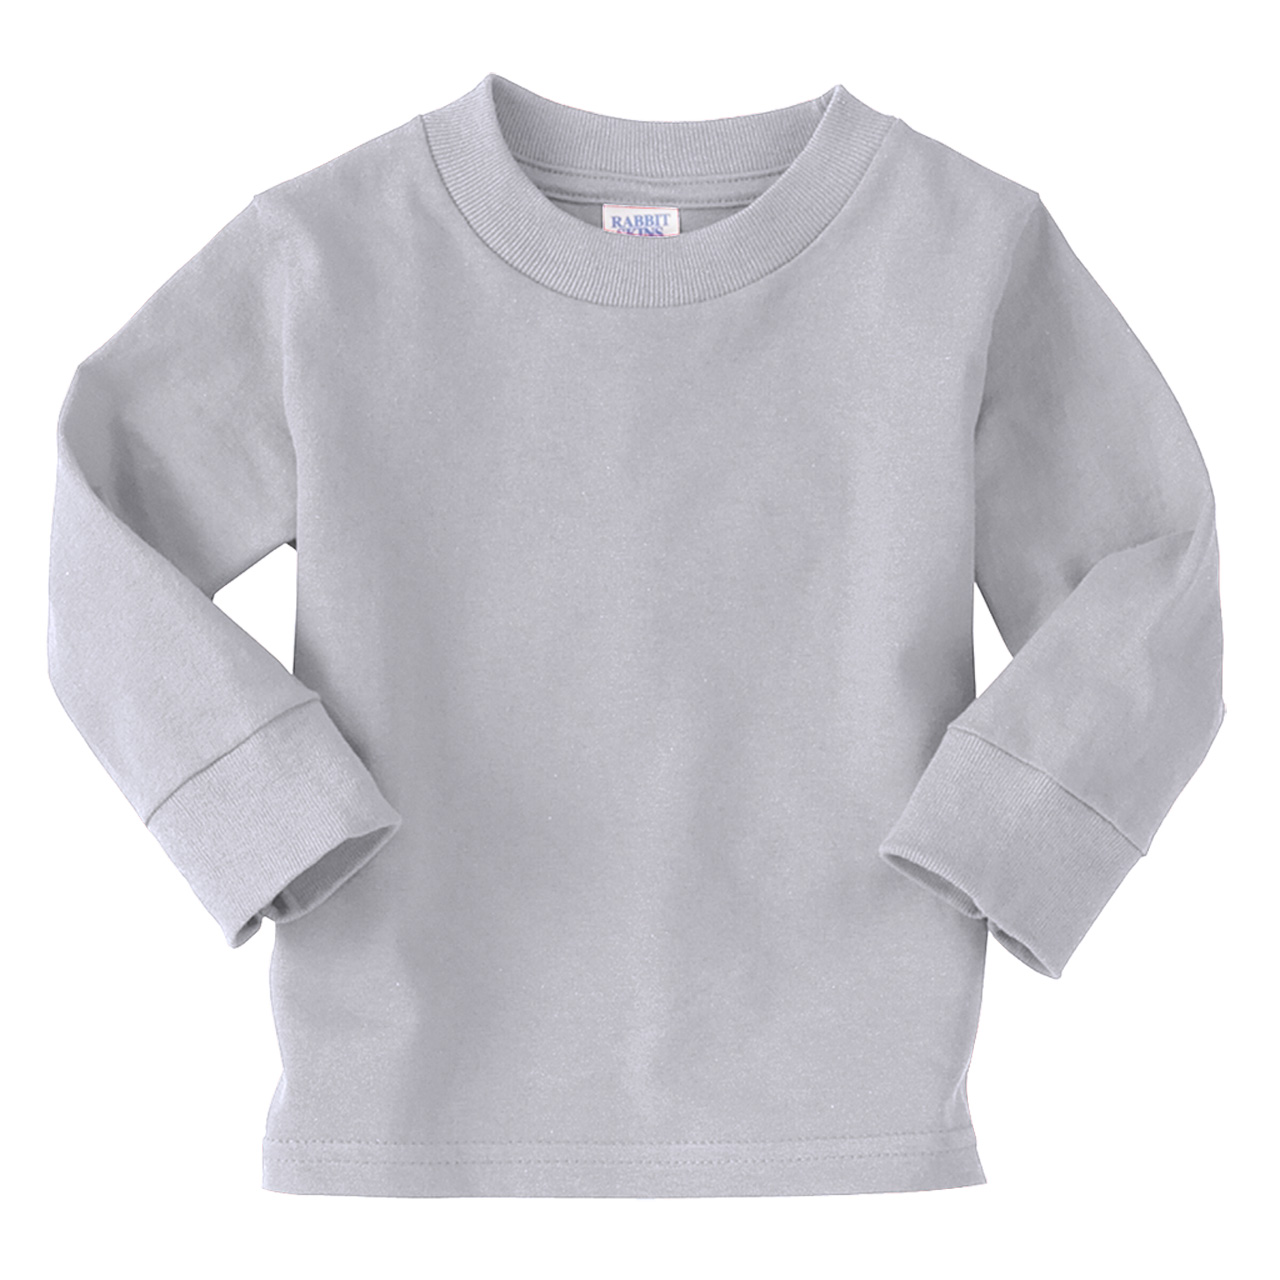 Picture of Rabbit Skins Toddler 9.17 Oz. Jersey Long-Sleeve T-Shirt